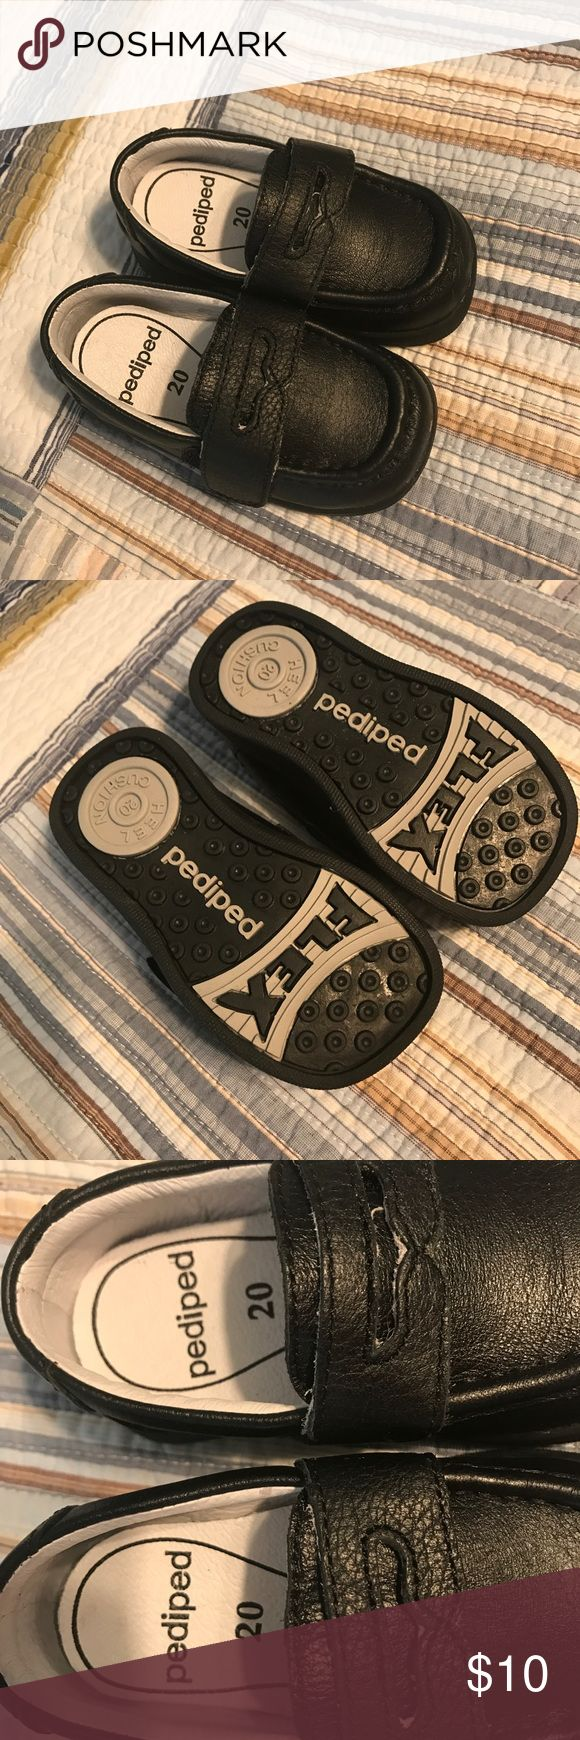 Pediped 5 (new w/o box). Never worn. Footbed is raising, but should not be an issue when wearing. pediped Shoes Dress Shoes